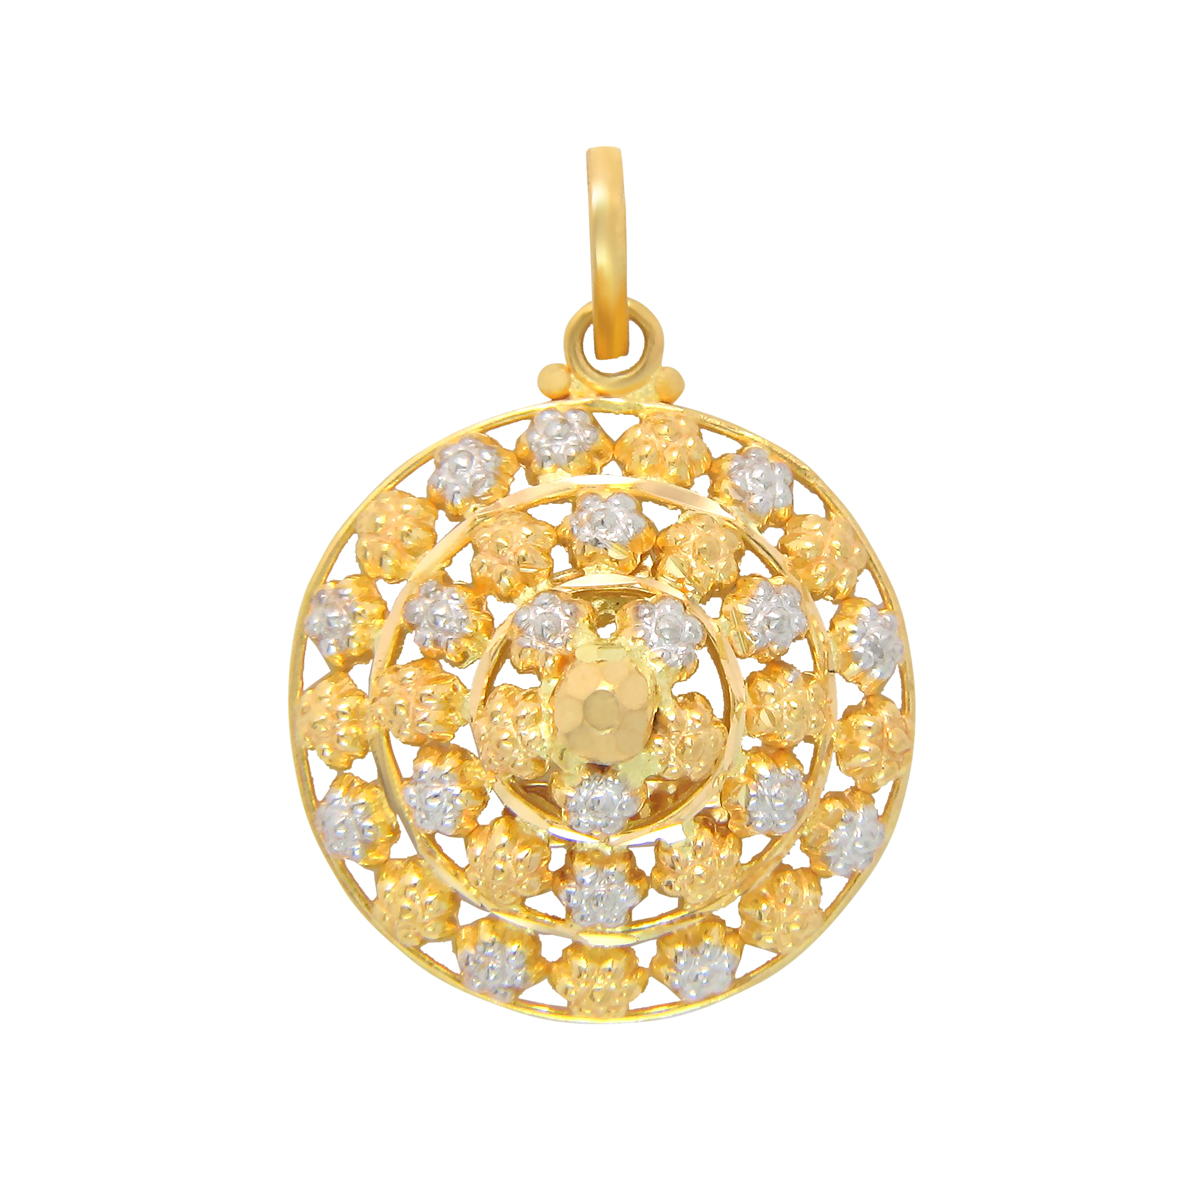 Popley 22Kt Gold Bandhan Pendant - A8